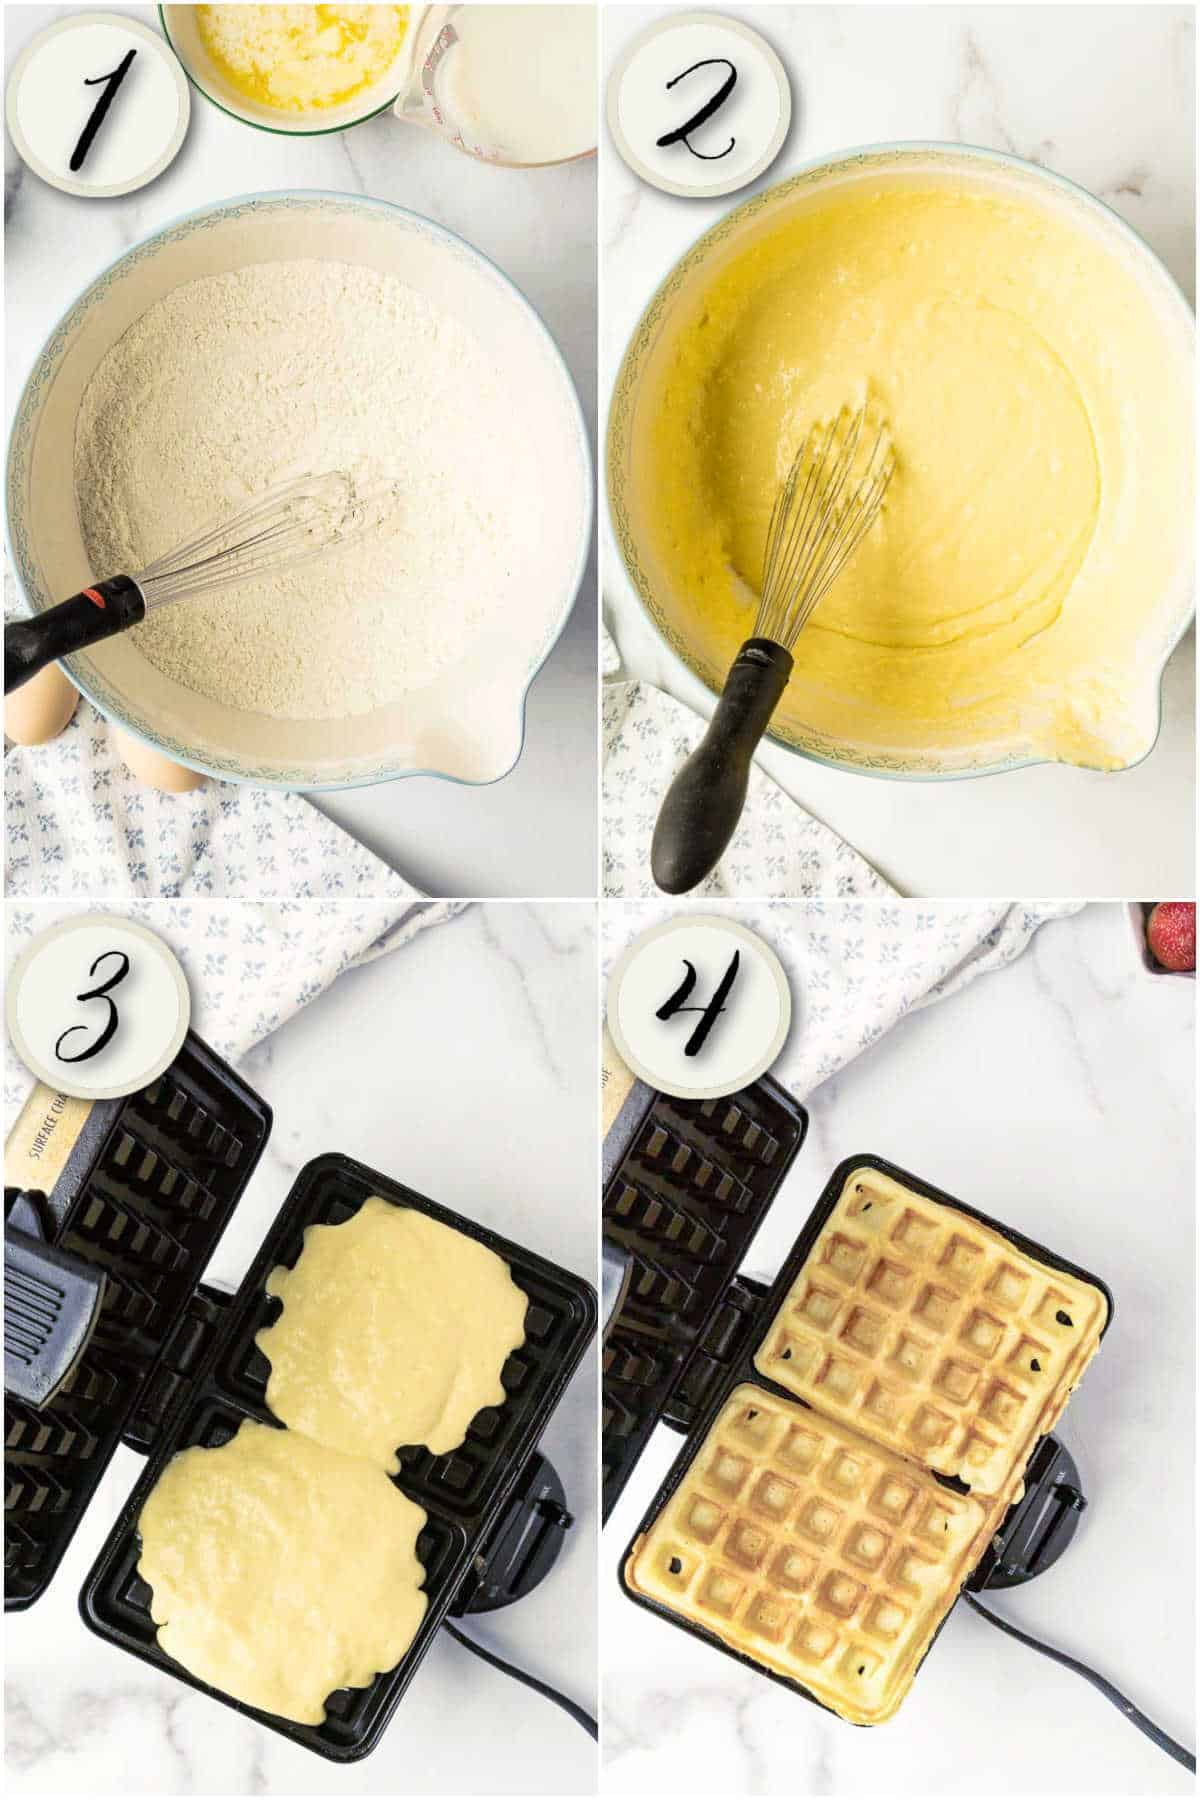 grid of 4 images: mixing dry ingredients, making waffle batter, pouring into waffle iron, finished wafffles